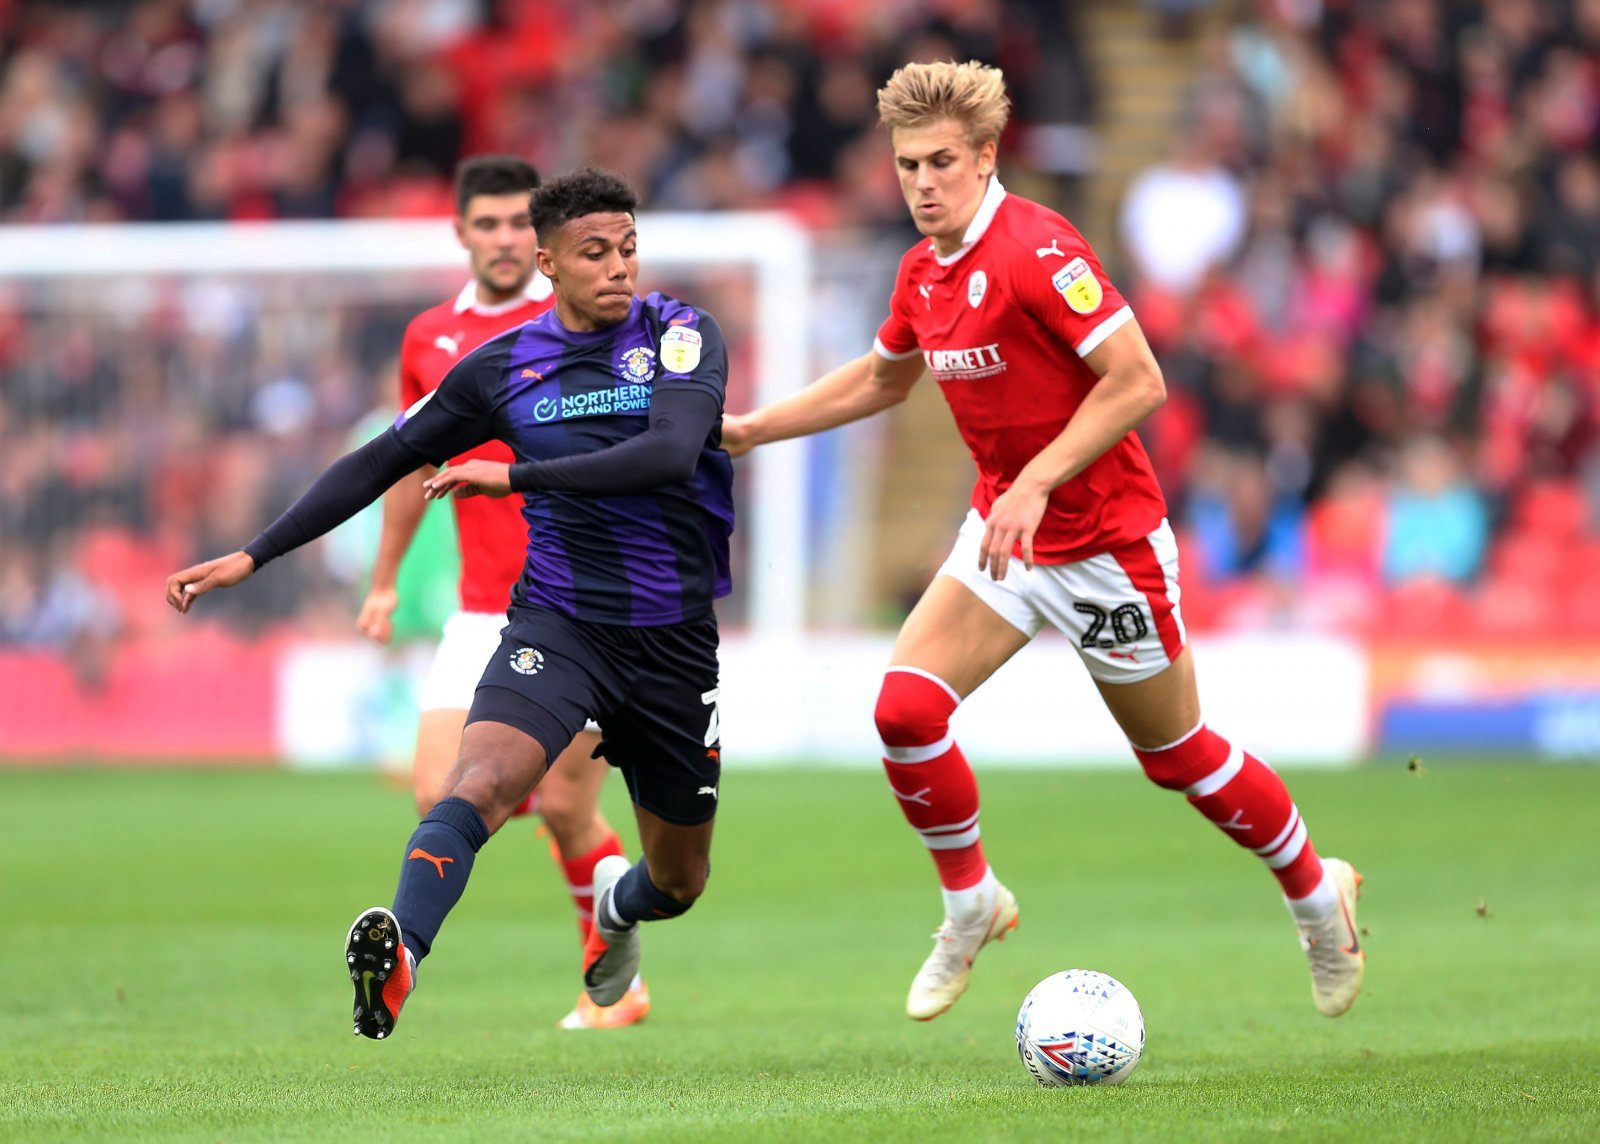 TT Introduces: James Justin as Leeds' next right-back